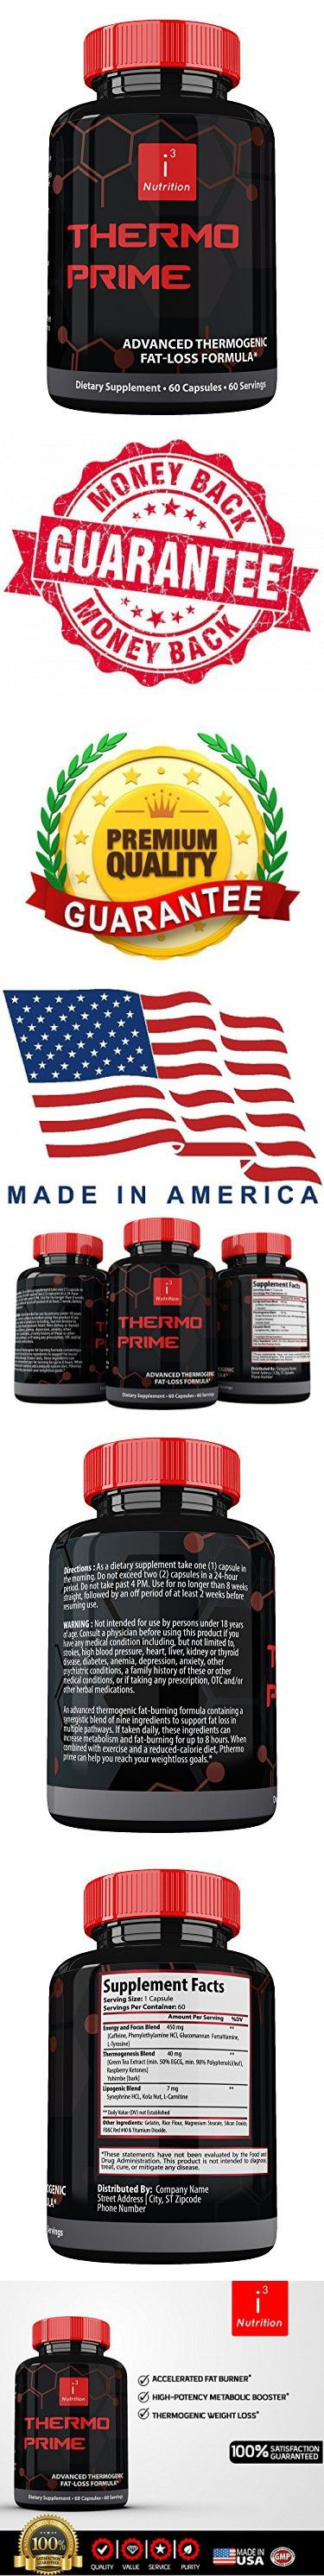 Thermo Prime by i3 Nutrition - Best Thermogenic Fat Burner Supplement - Rapid Weight Loss - Enhanced Mental Clarity - Nootropic Advanced Focus - Fat Loss Formulation for Men & Women - 60 Count